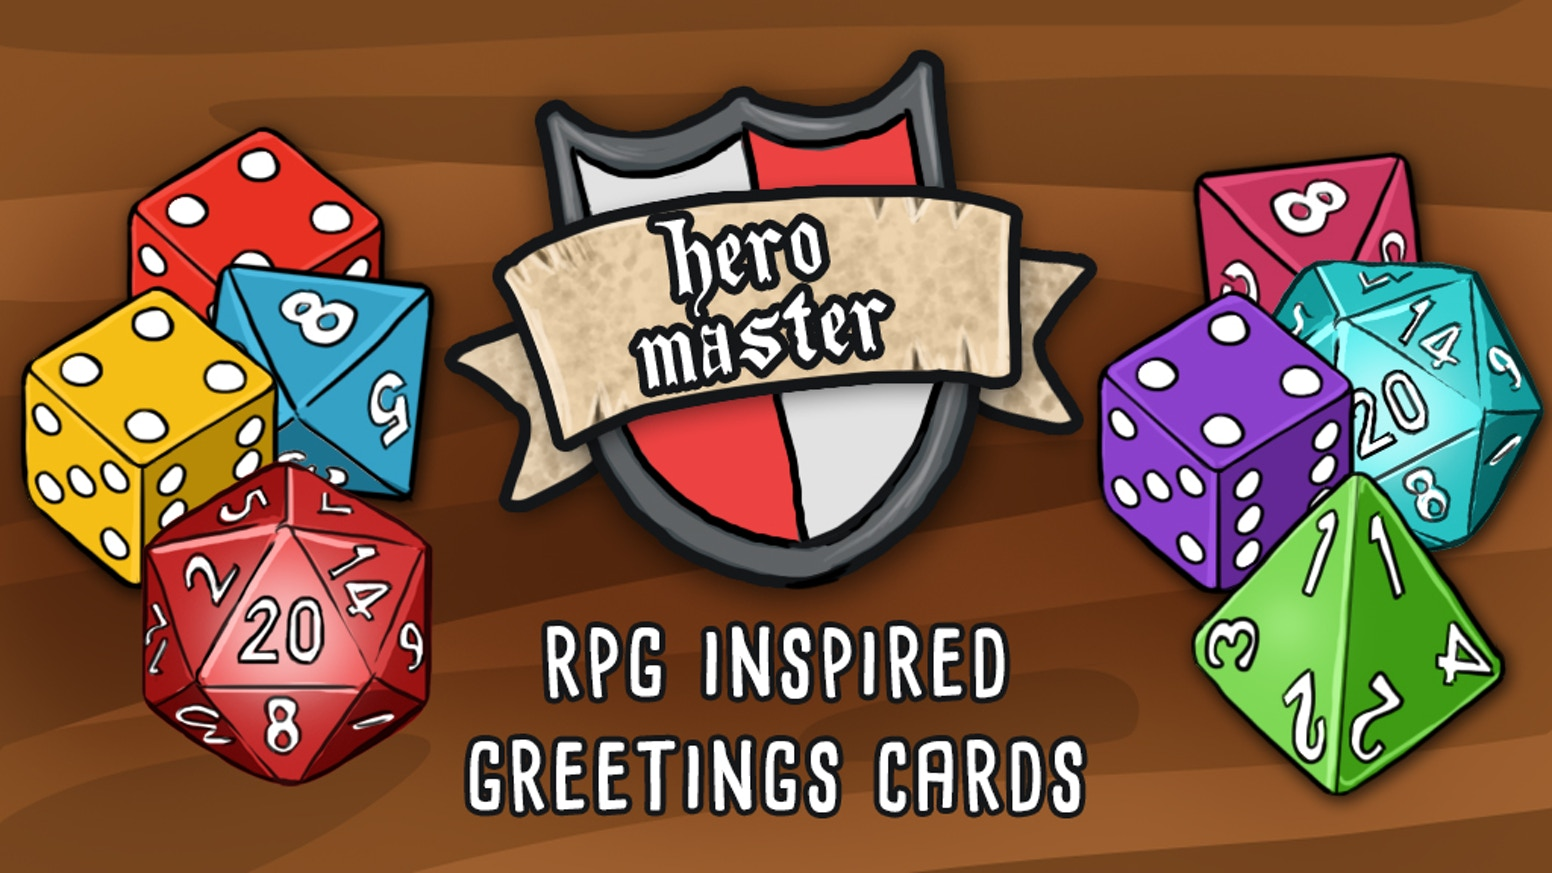 Hero Master Fantasy Game And Rpg Humour Greetings Cards By Jamie